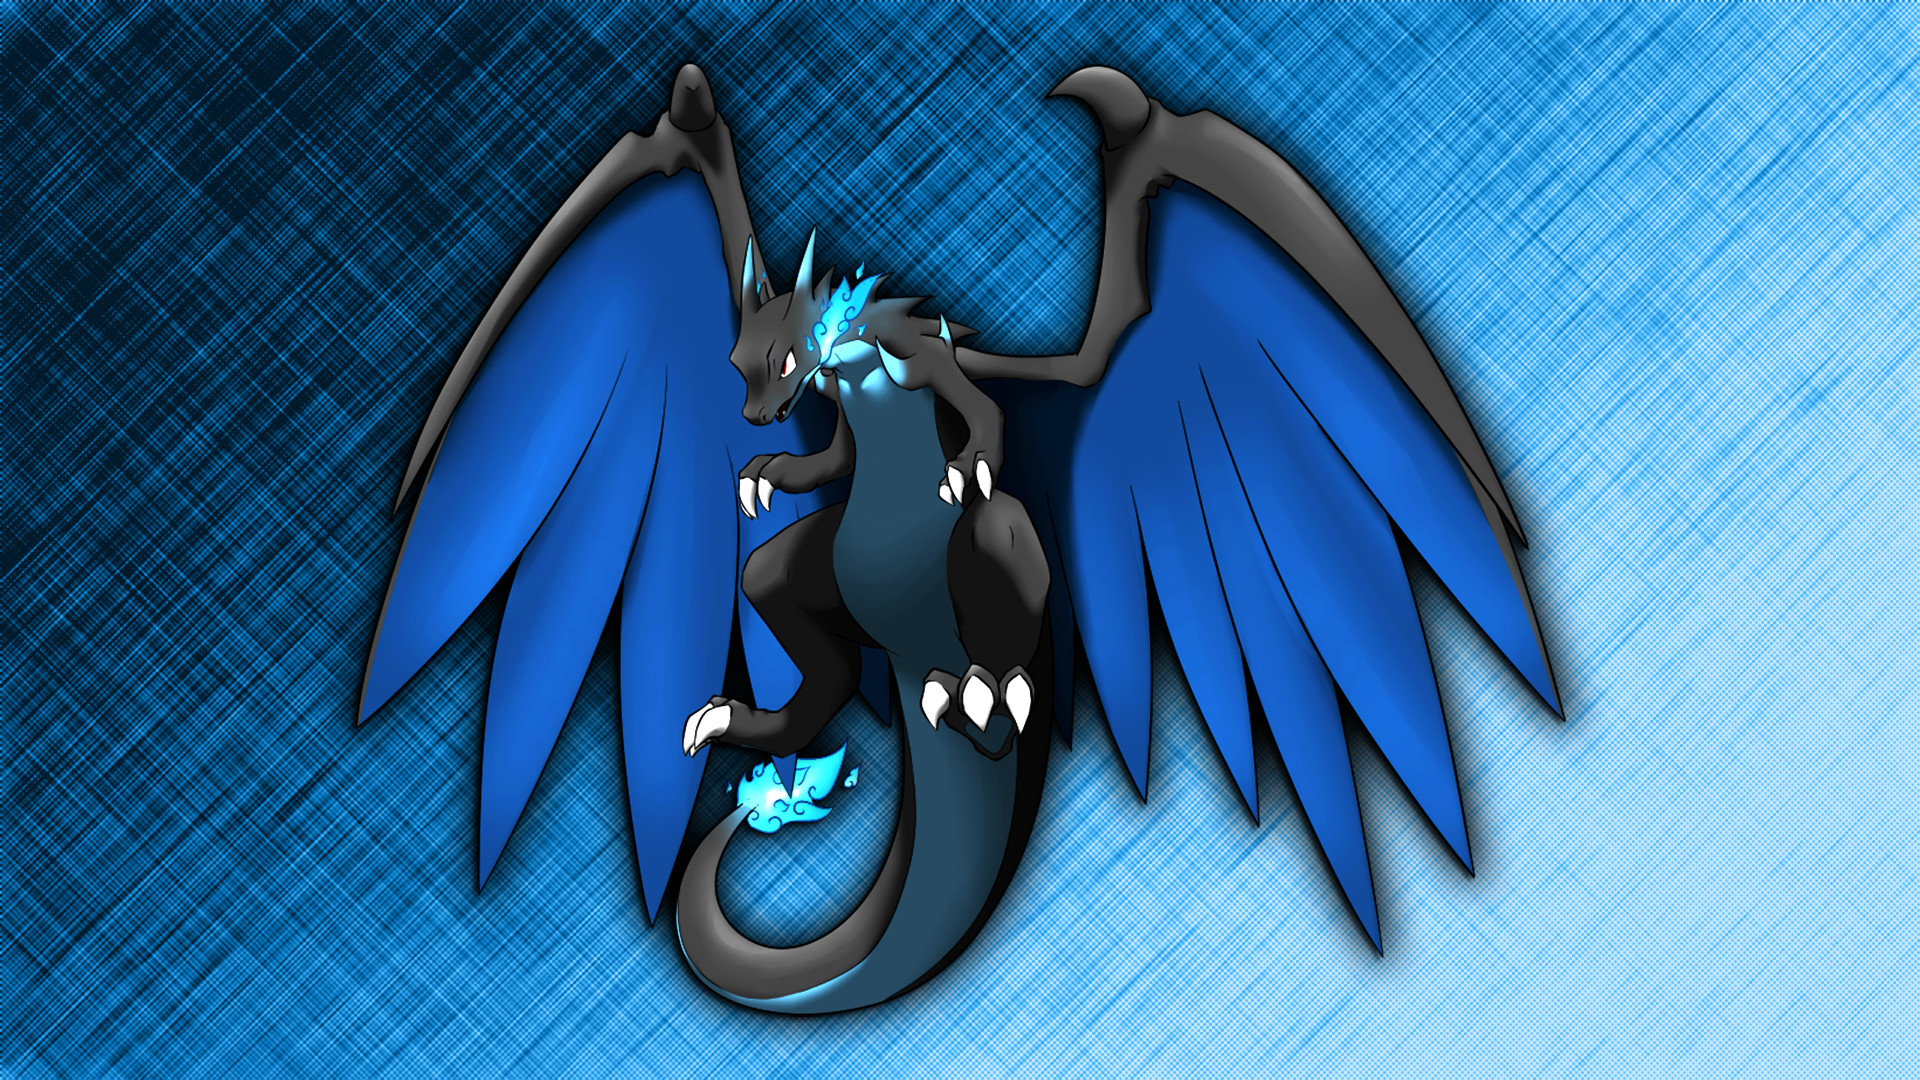 Pokemon Mega Charizard Wallpaper (70+ images)